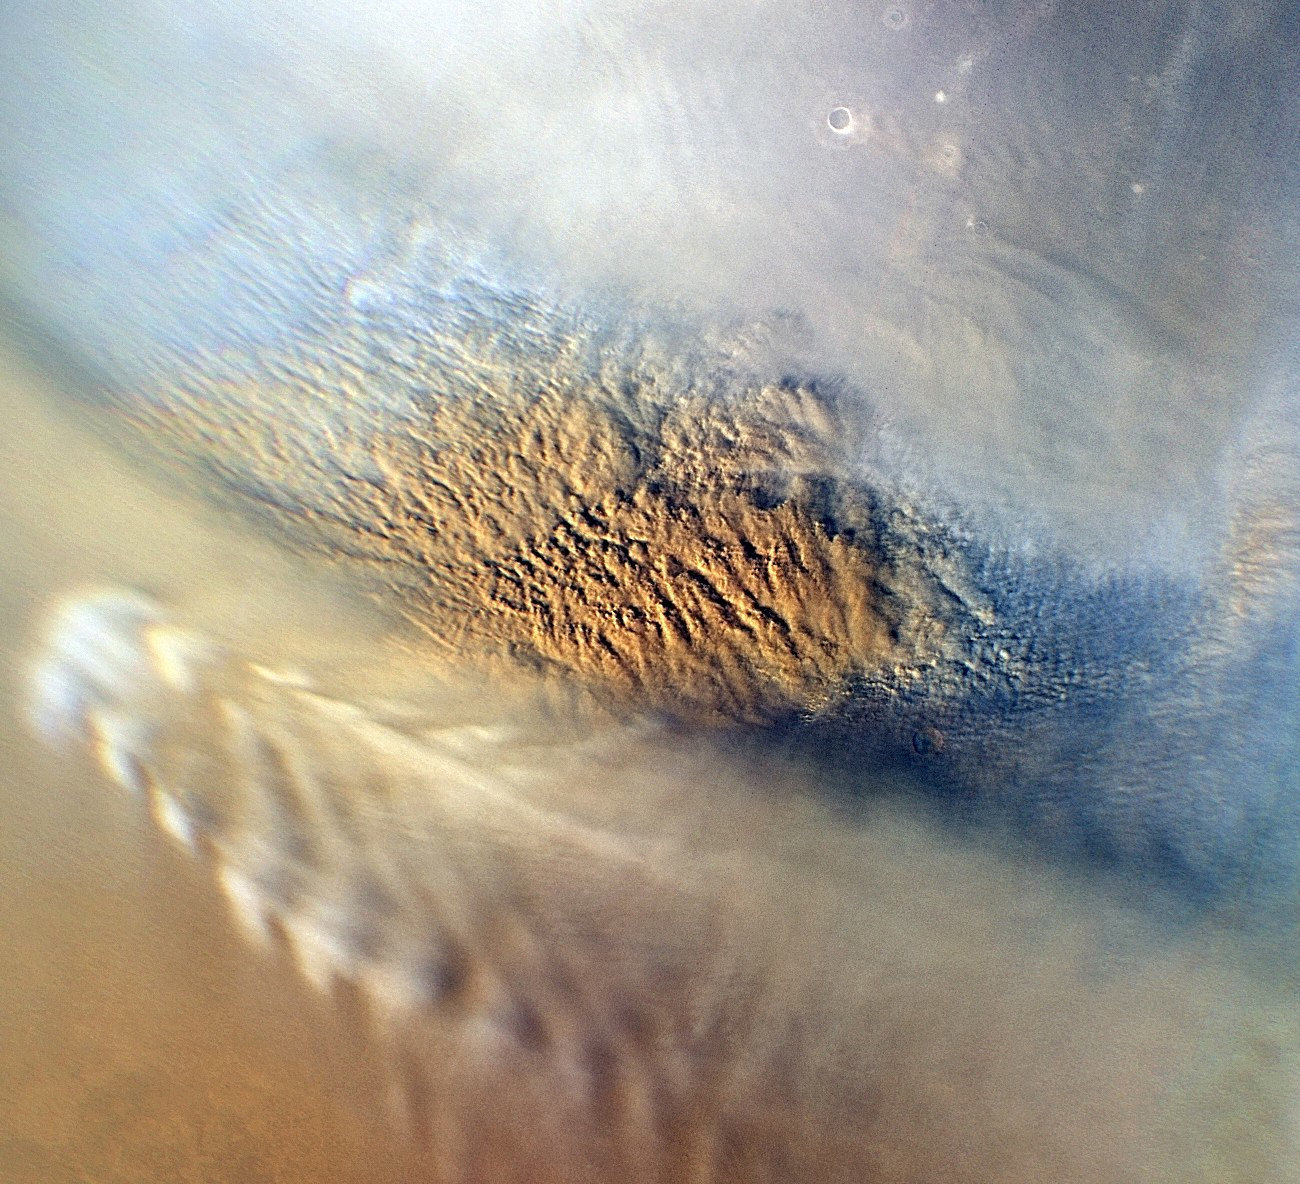 the atmosphere surface and dust storms of mars Mars appears red in color because of refraction of light by its atmosphere, much like the color of the totally eclipsed moon false winds on mars give rise to planet-wide dust storms.